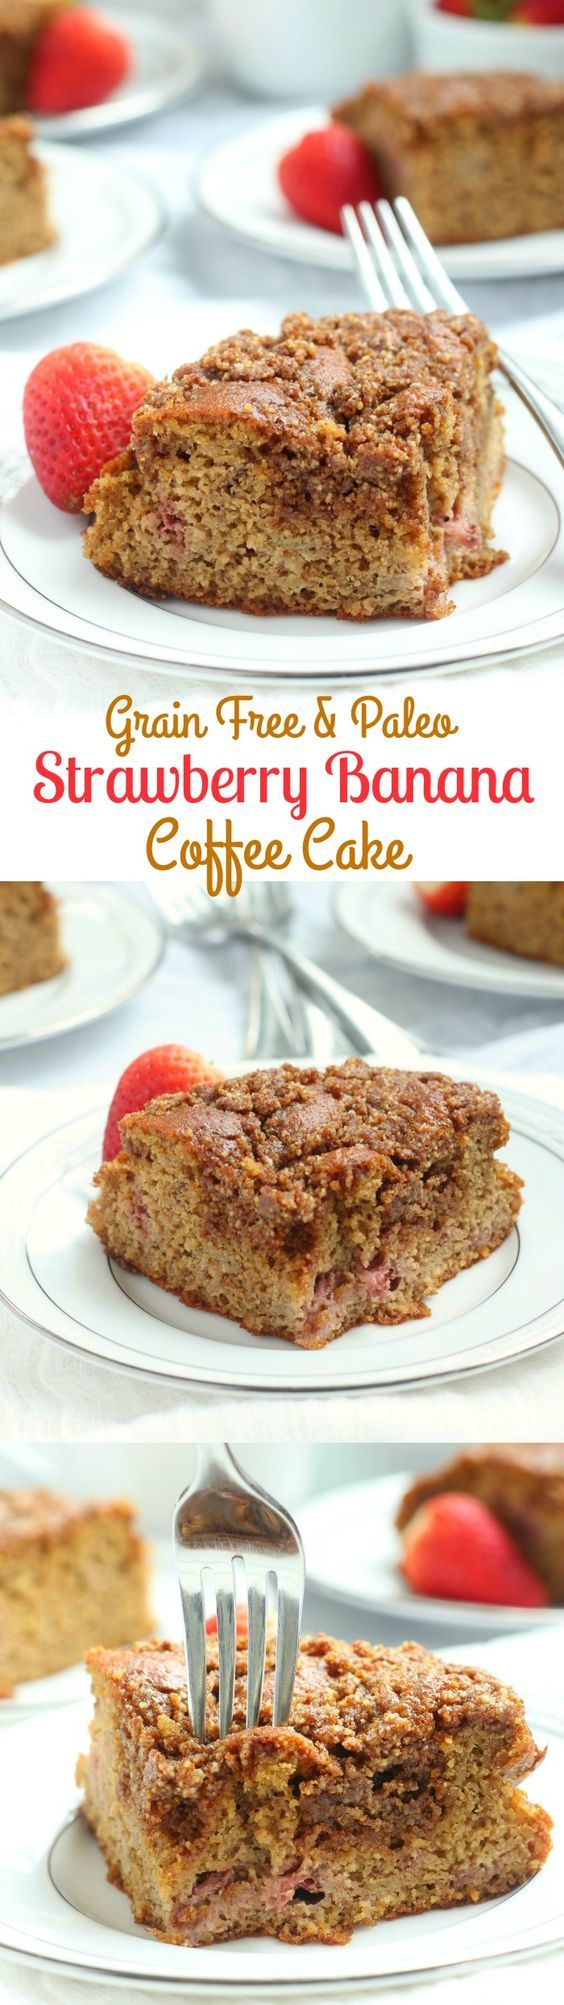 Strawberry Banana Coffee cake that's grain free, dairy free, Paleo with an incredible cinnamon crumb topping! Pin this clean eating breakfast recipe for later.